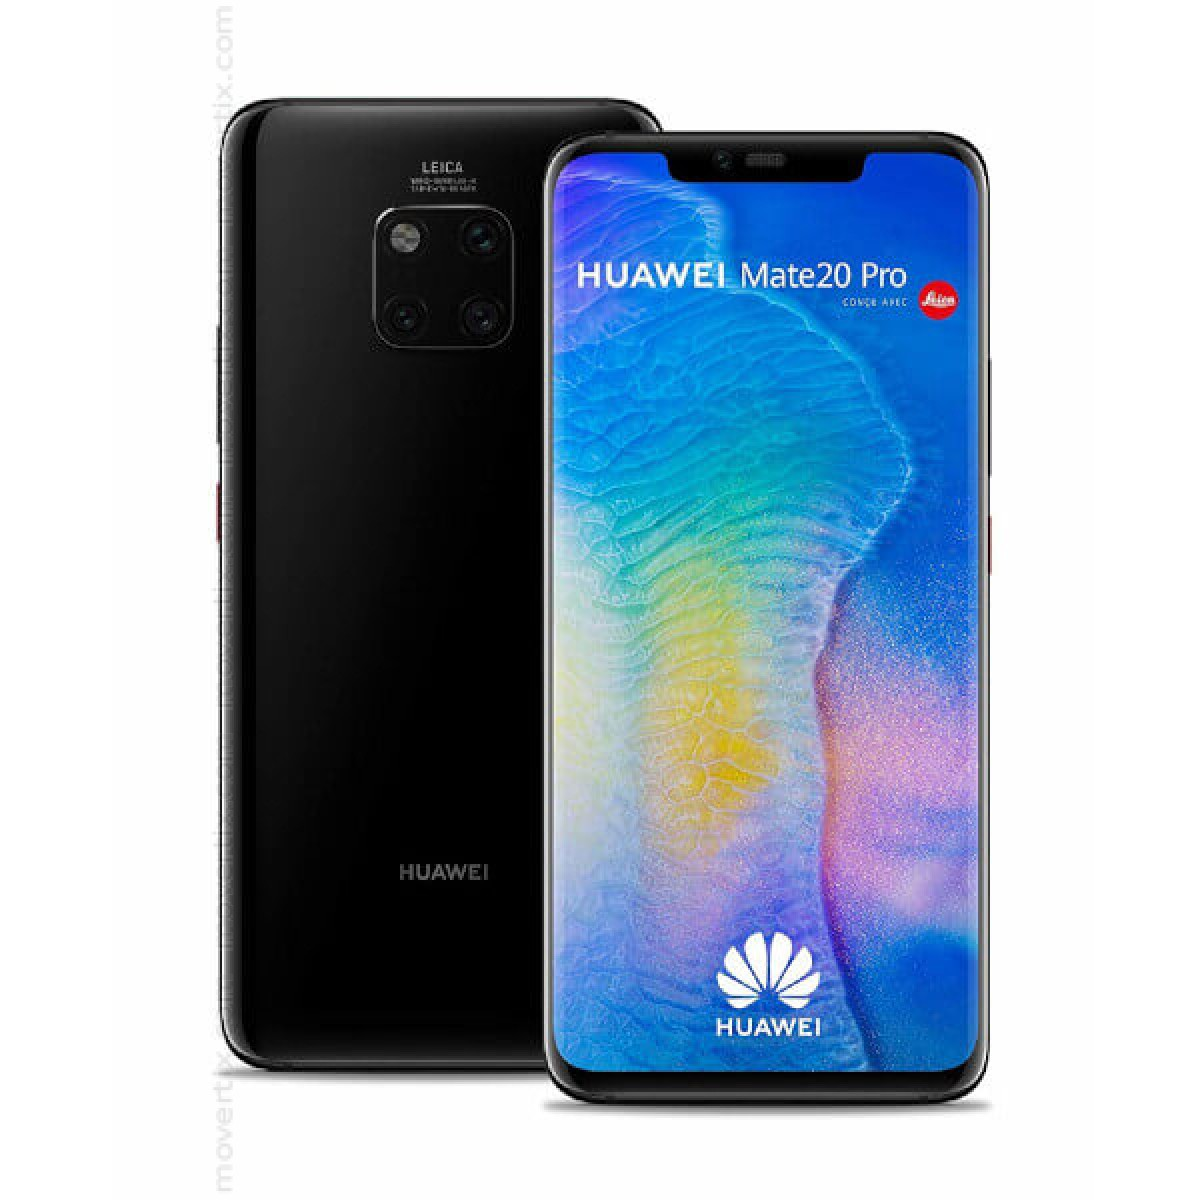 04ebeea8cb6279 The Huawei Mate 20 Pro in black color is a Single SIM smartphone with  triple Leica camera, exceptional performance, 6GB of RAM and 128GB of  storage, ...